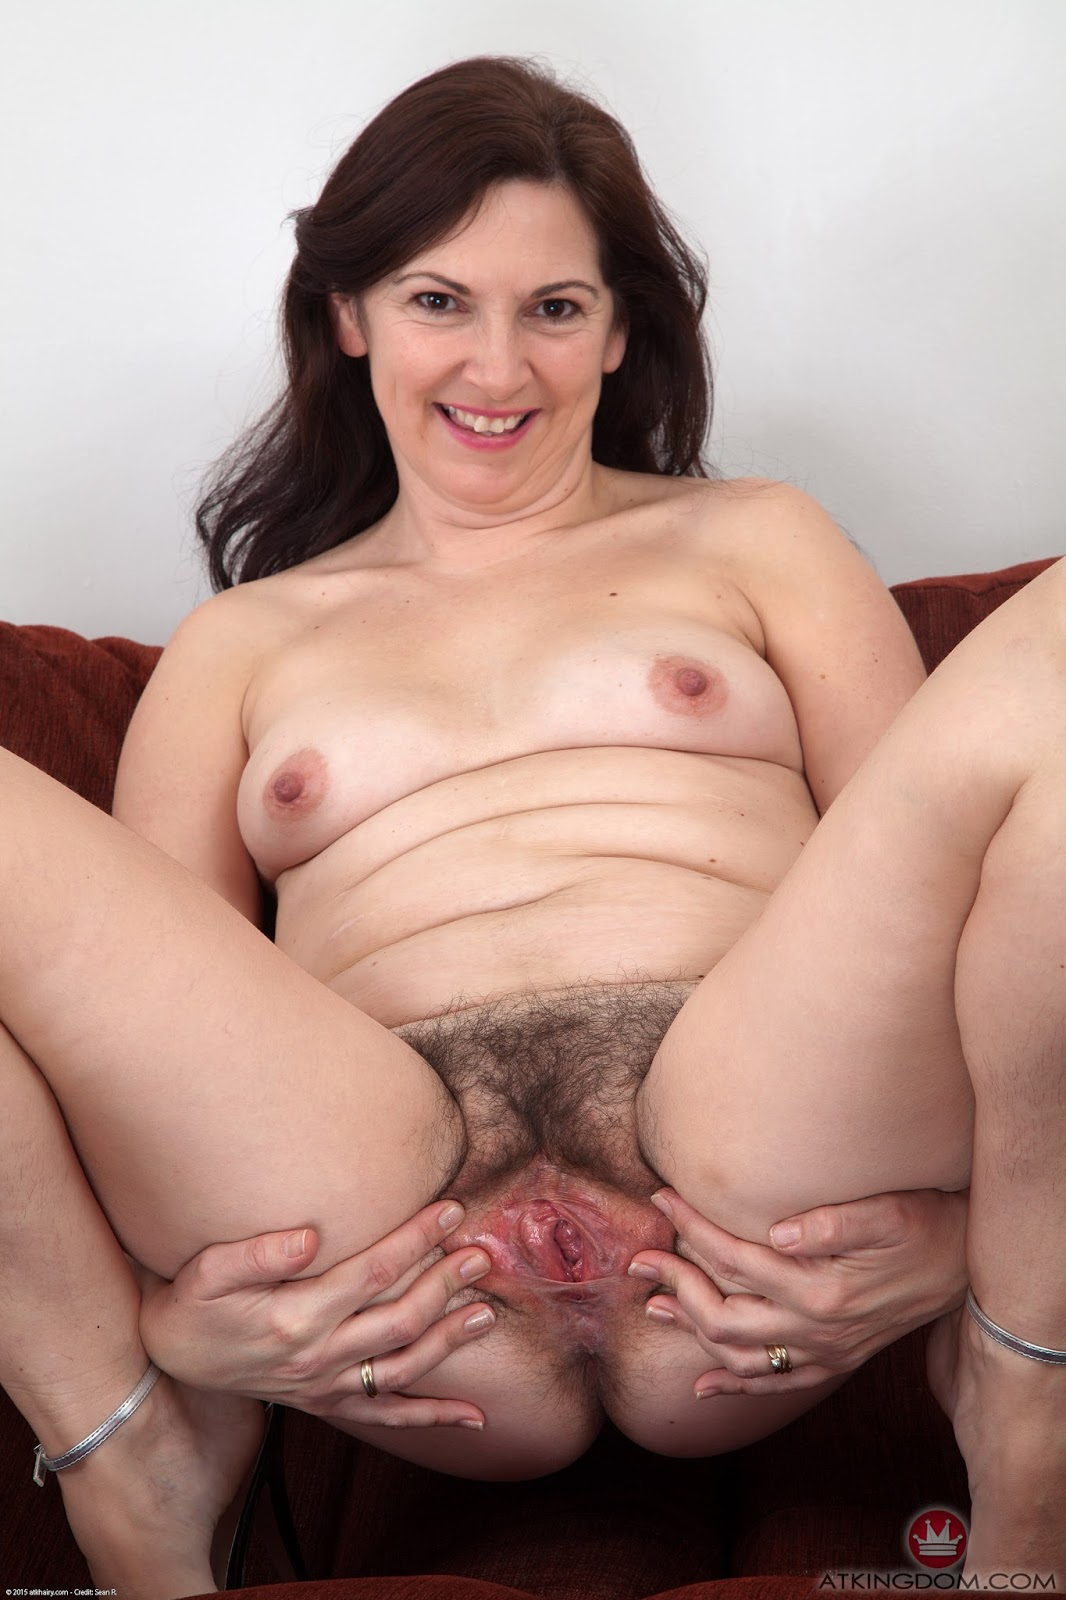 Hairy Pussy Older